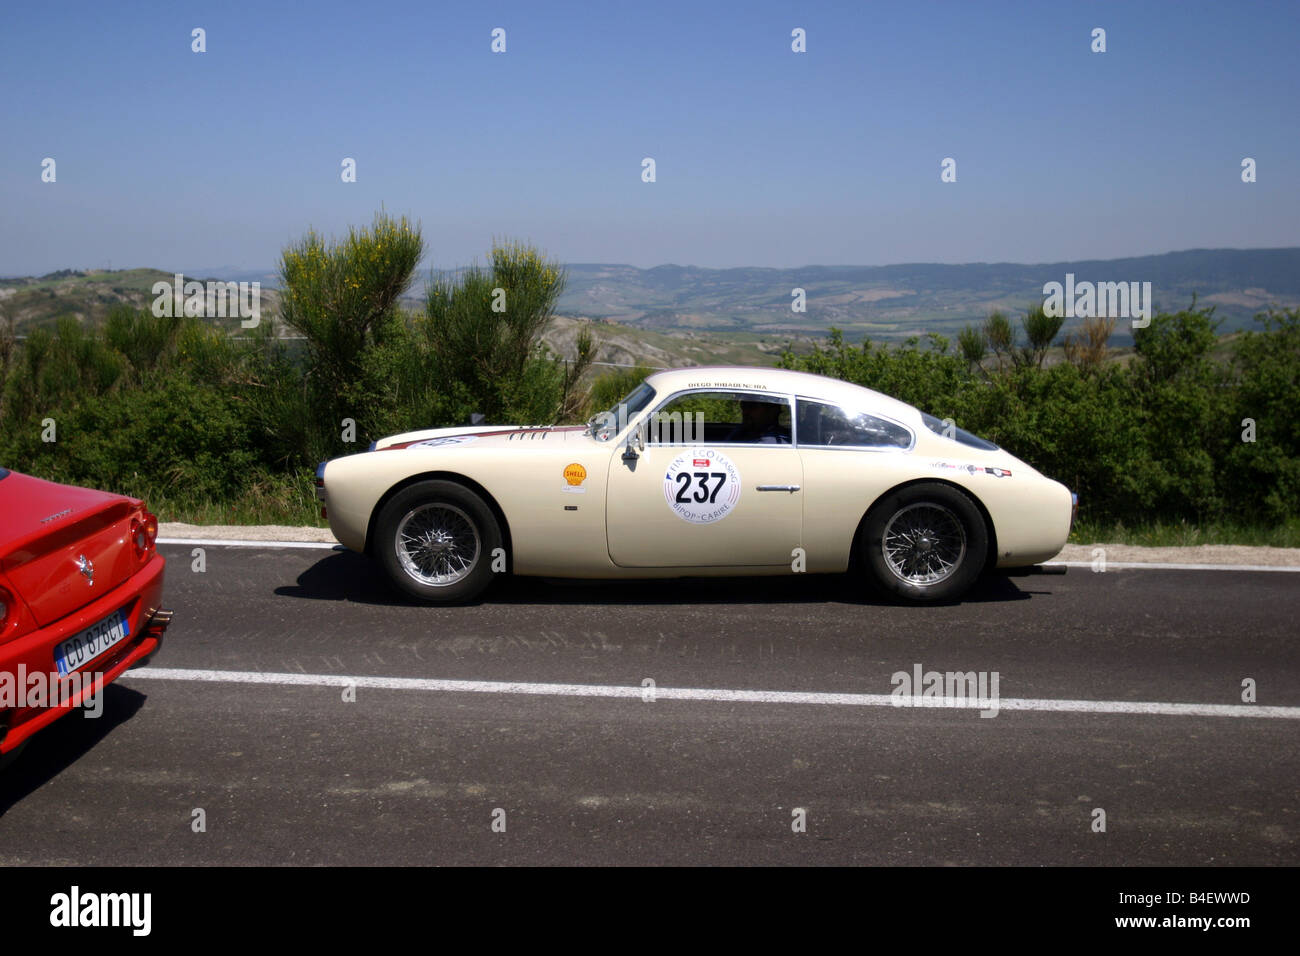 Car, events, event, vintage car-Rallye, Mille Miglia 2003, landscape, scenery - Stock Image